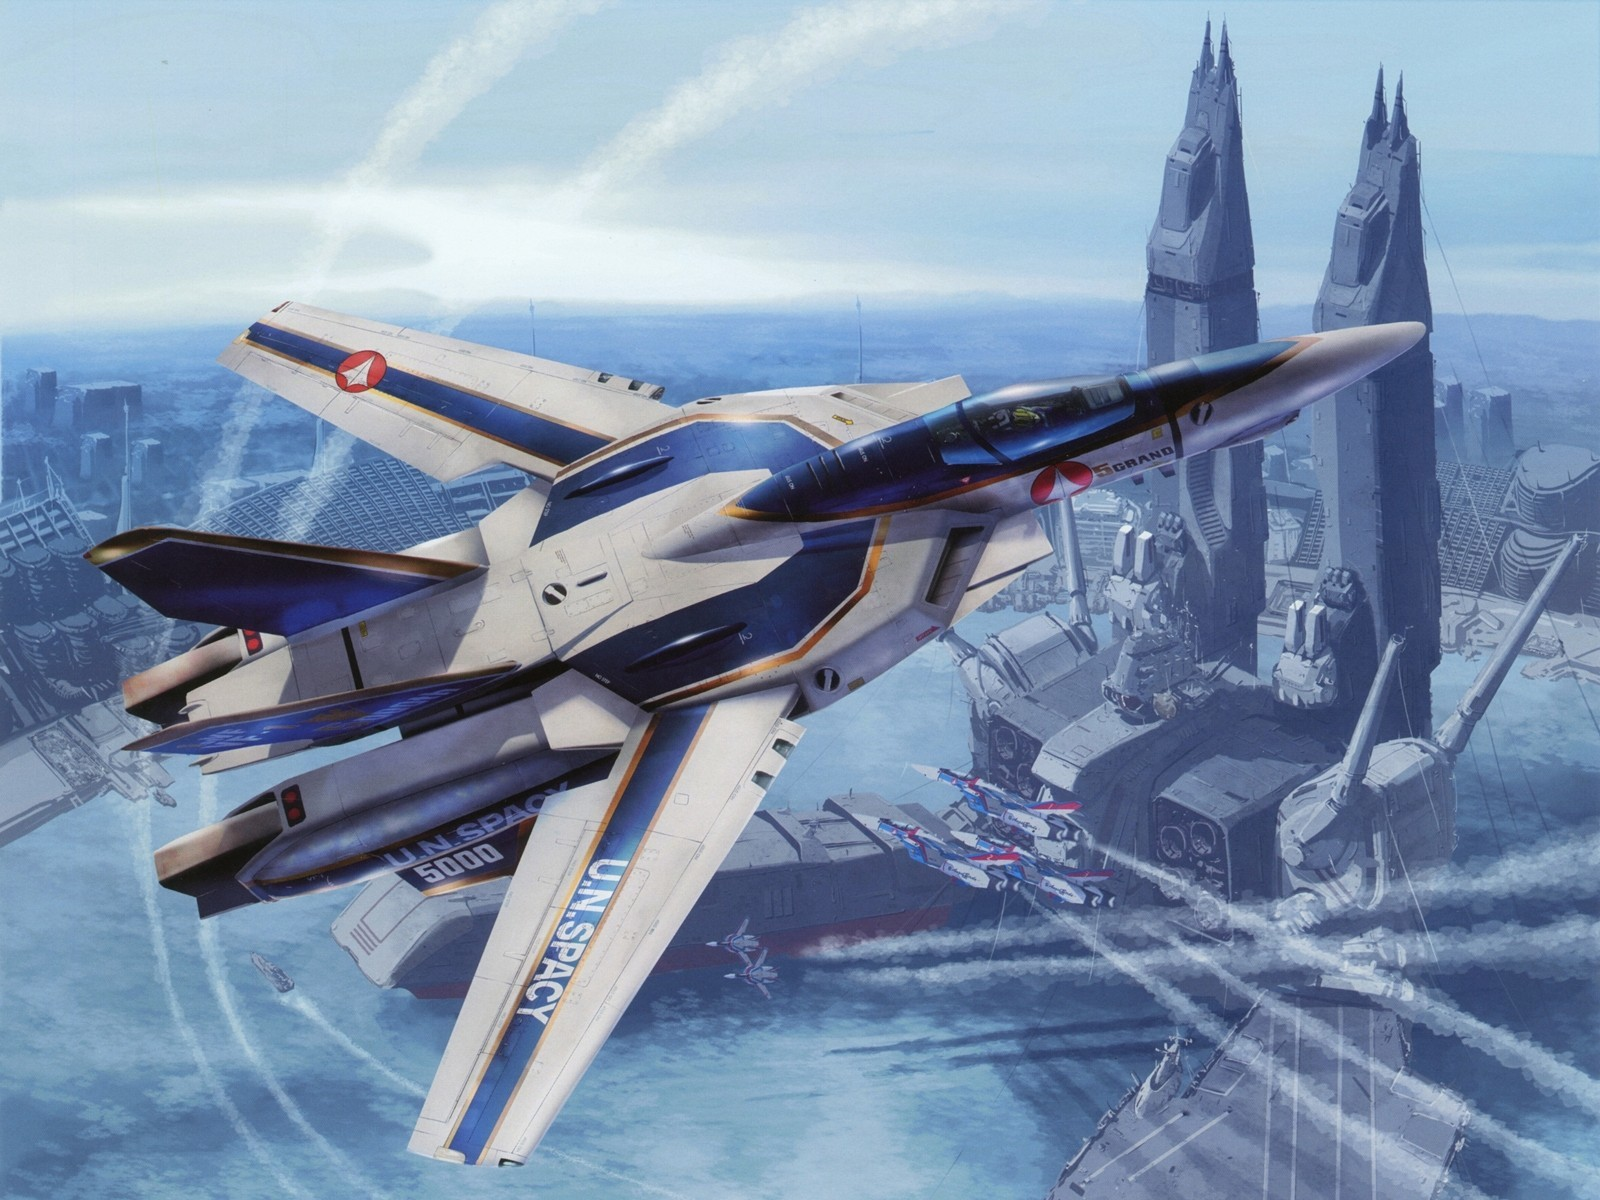 macross mecha planes HD Wallpaper